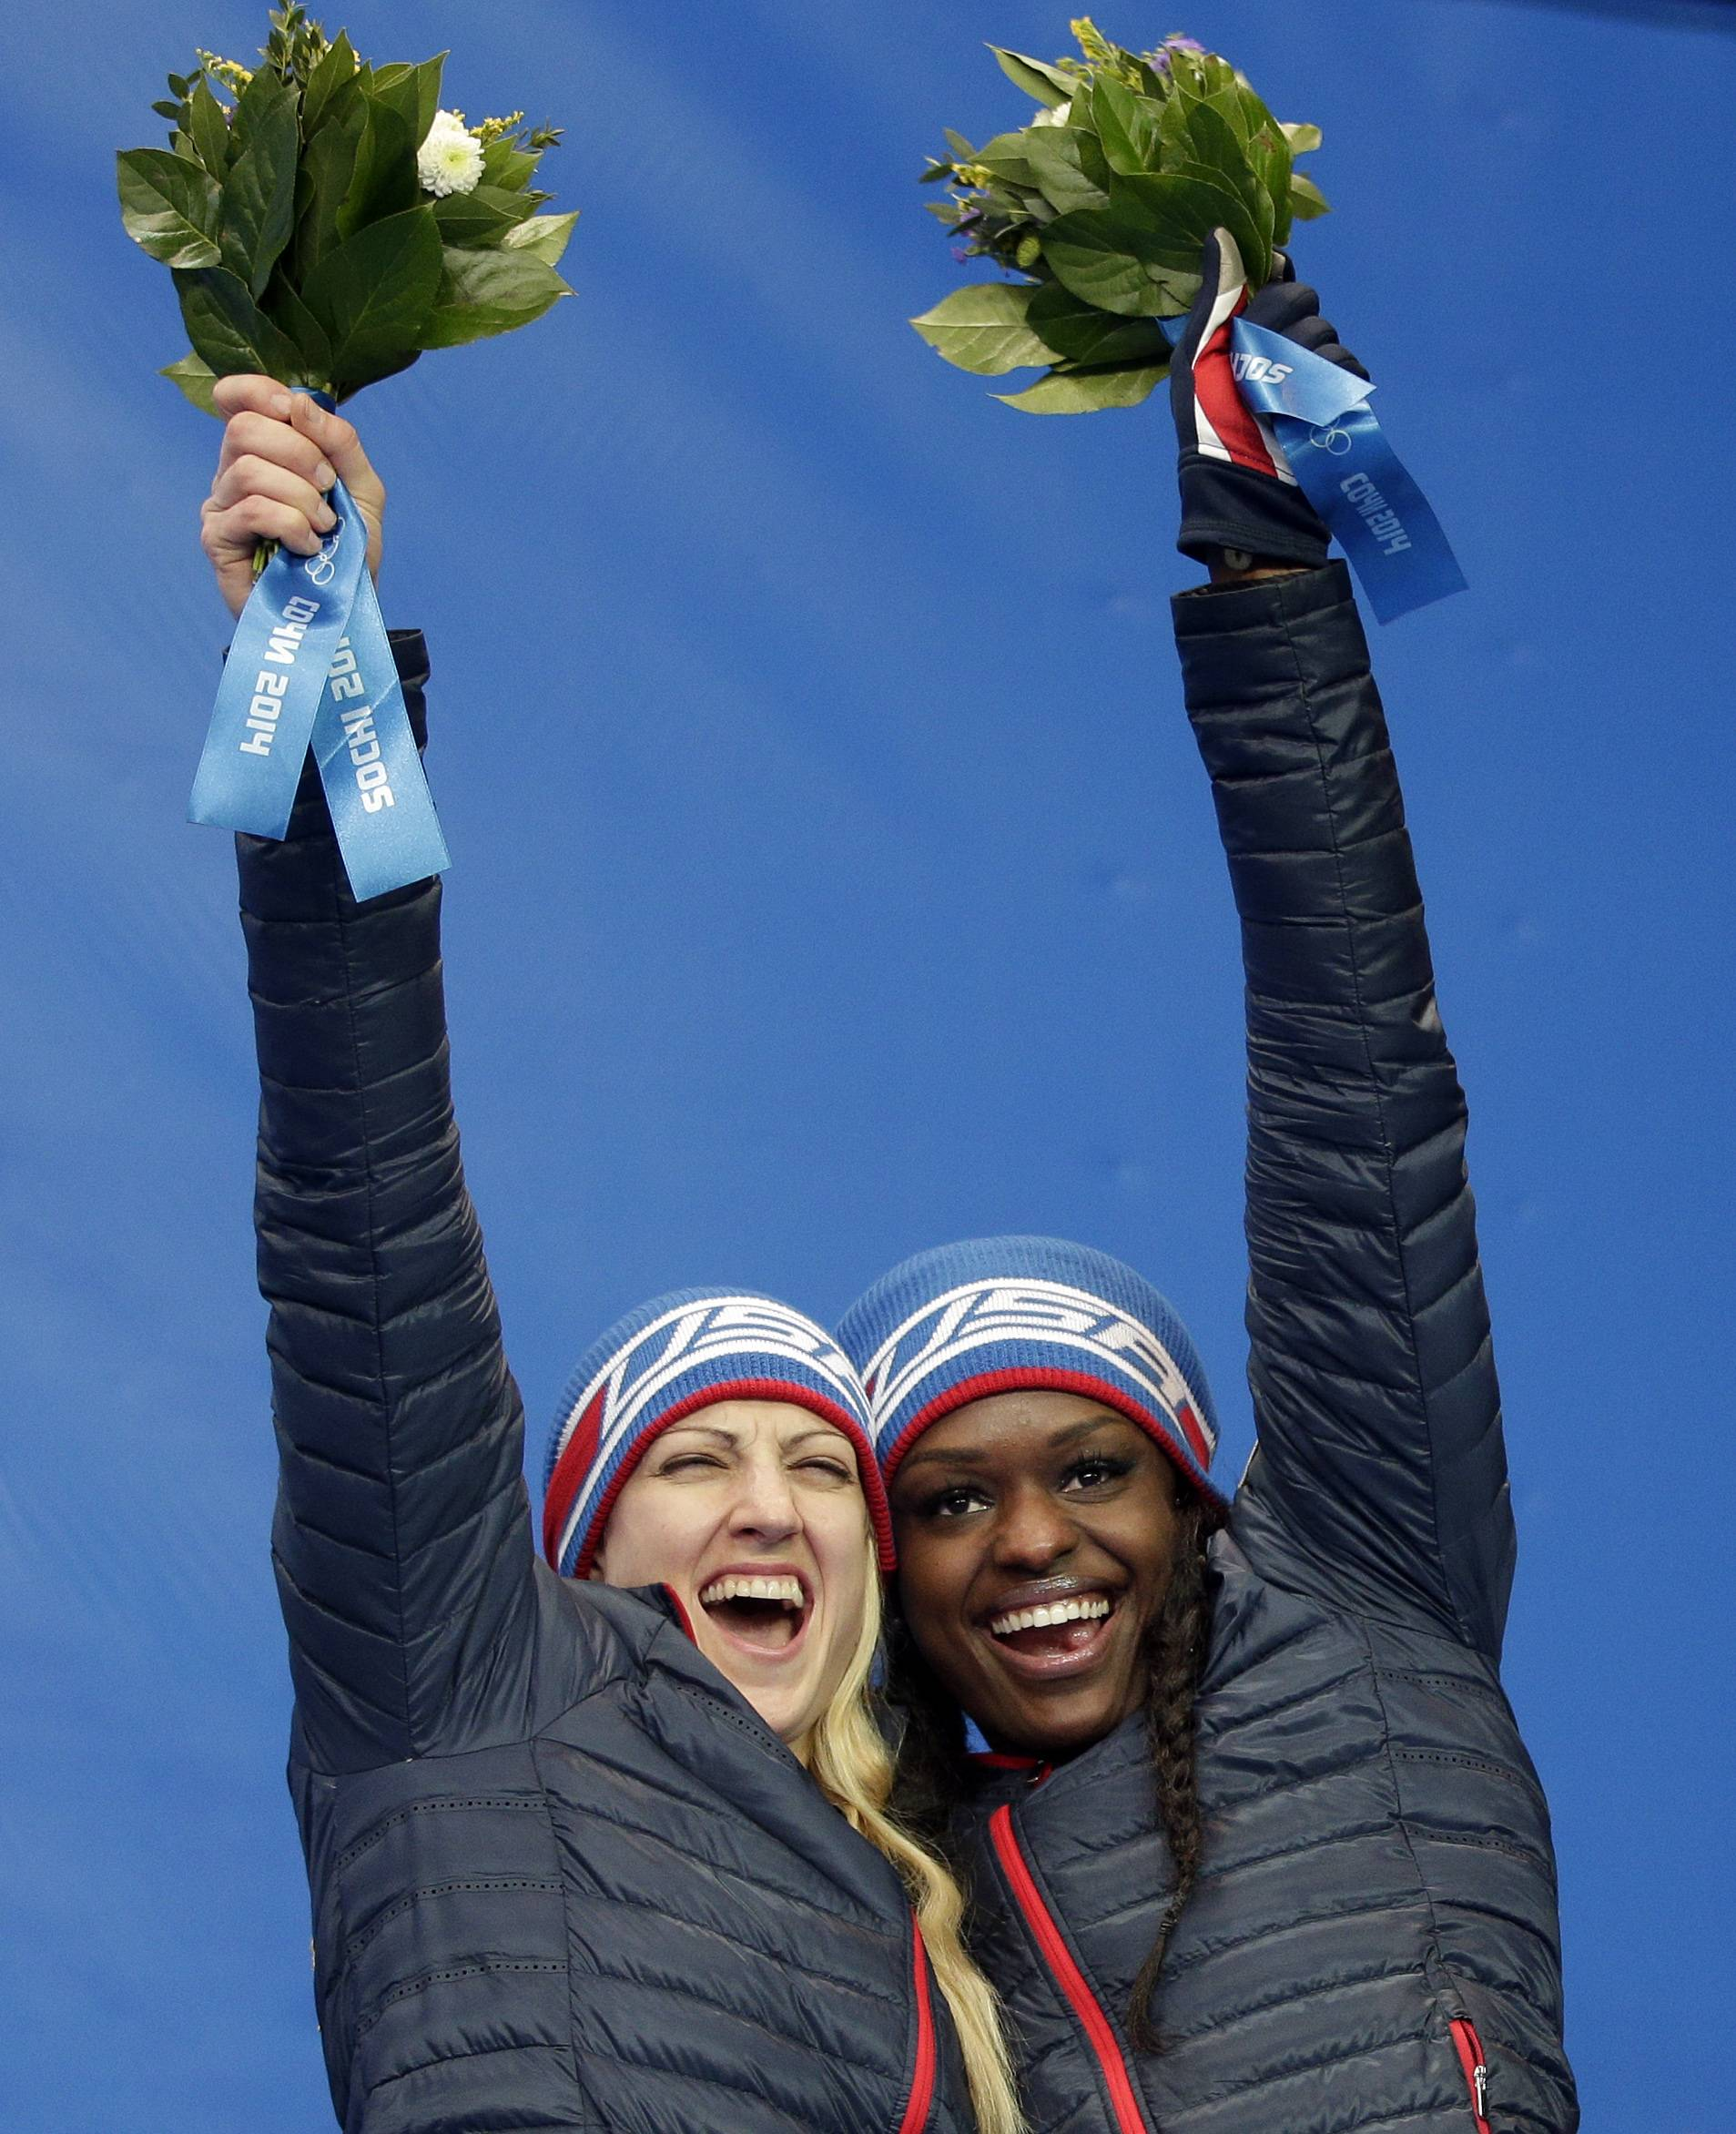 Bronze medal winners from the United States Jamie Greubel and Aja Evans pose during the flower ceremony for the women's bobsled competition.